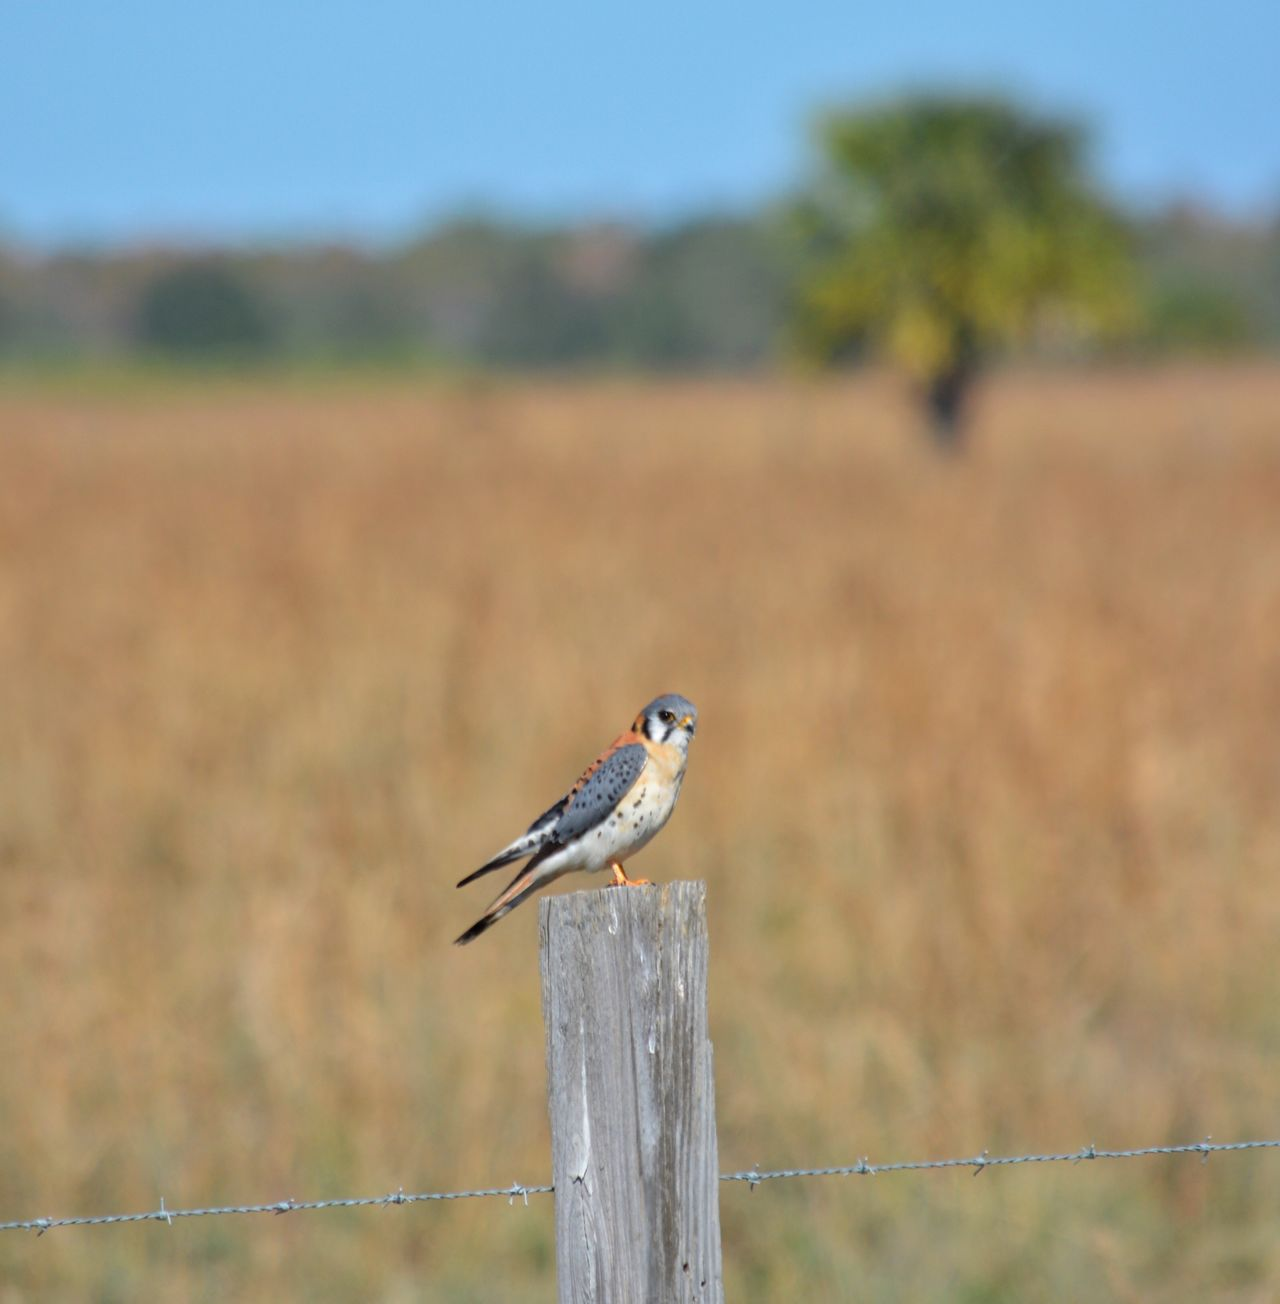 American Kestrel In S. Florida For The Winter Winter Birding In Florida in the St Sebastian River Preserve State Park Bird Focus On Foreground One Animal Animals In The Wild Animal Themes Animal Wildlife Nature Perching Outdoors No People Day Close-up